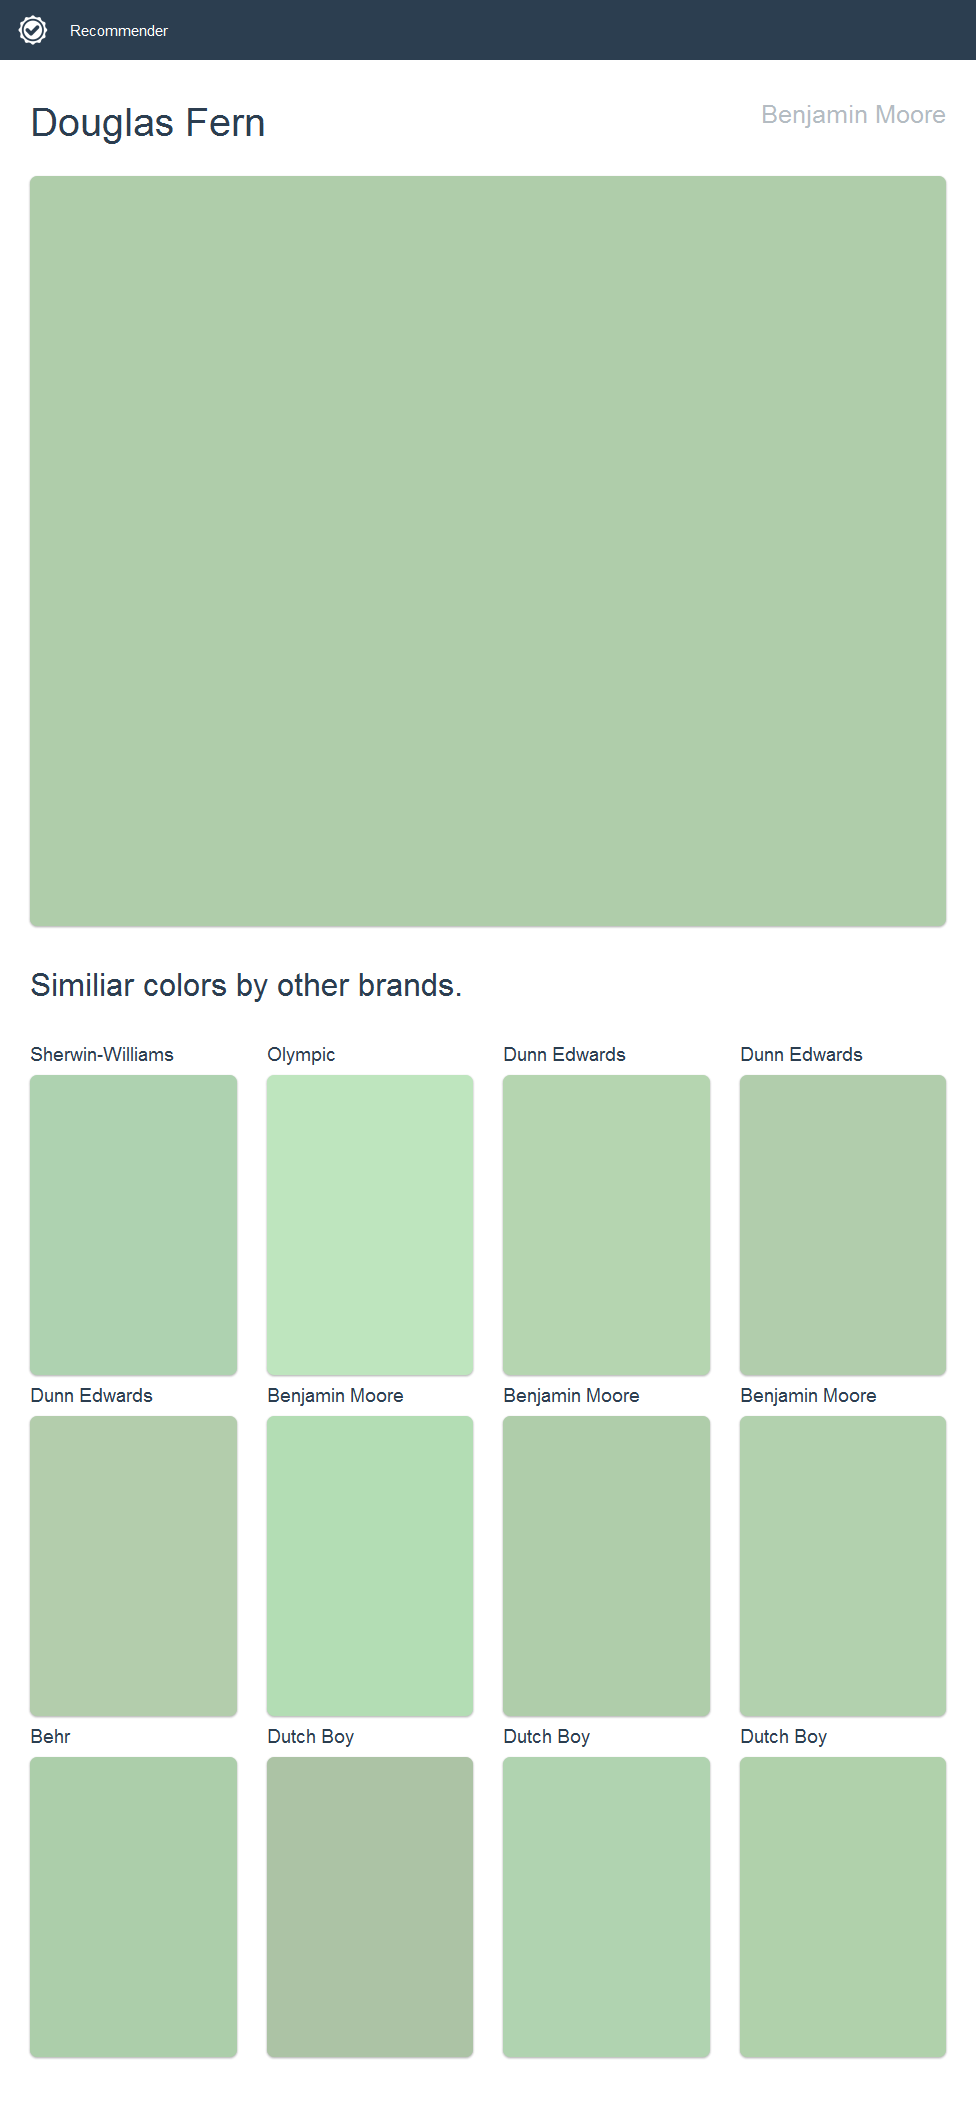 Click The Image To See Similiar Colors By Other Brands